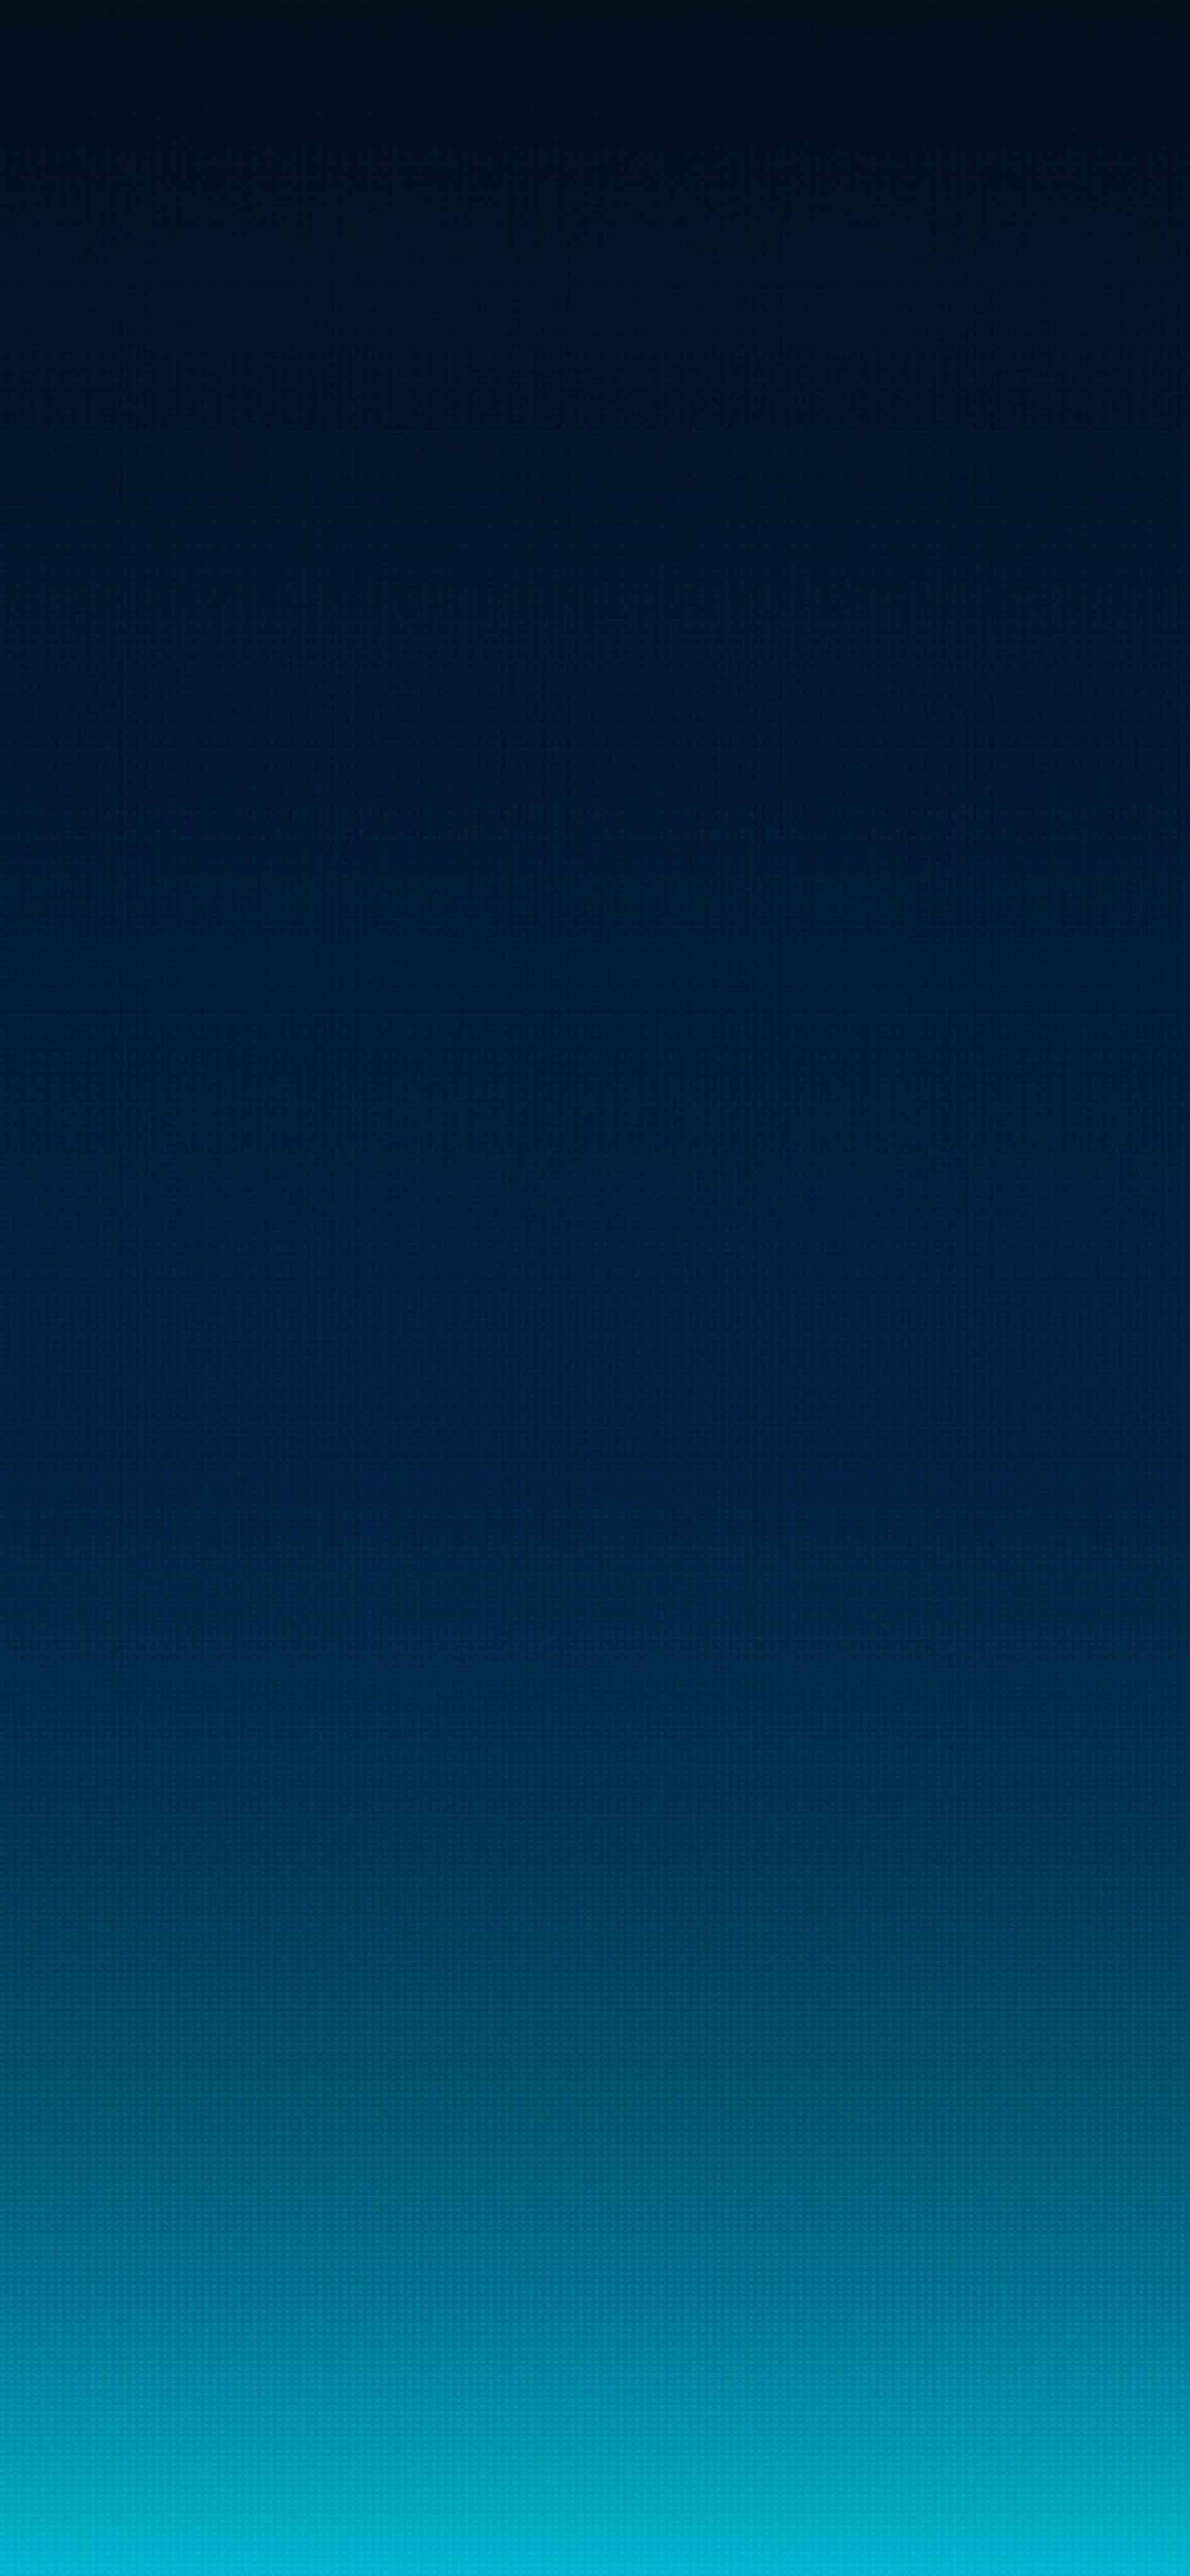 Blue Gradient HD iPhone Wallpaper